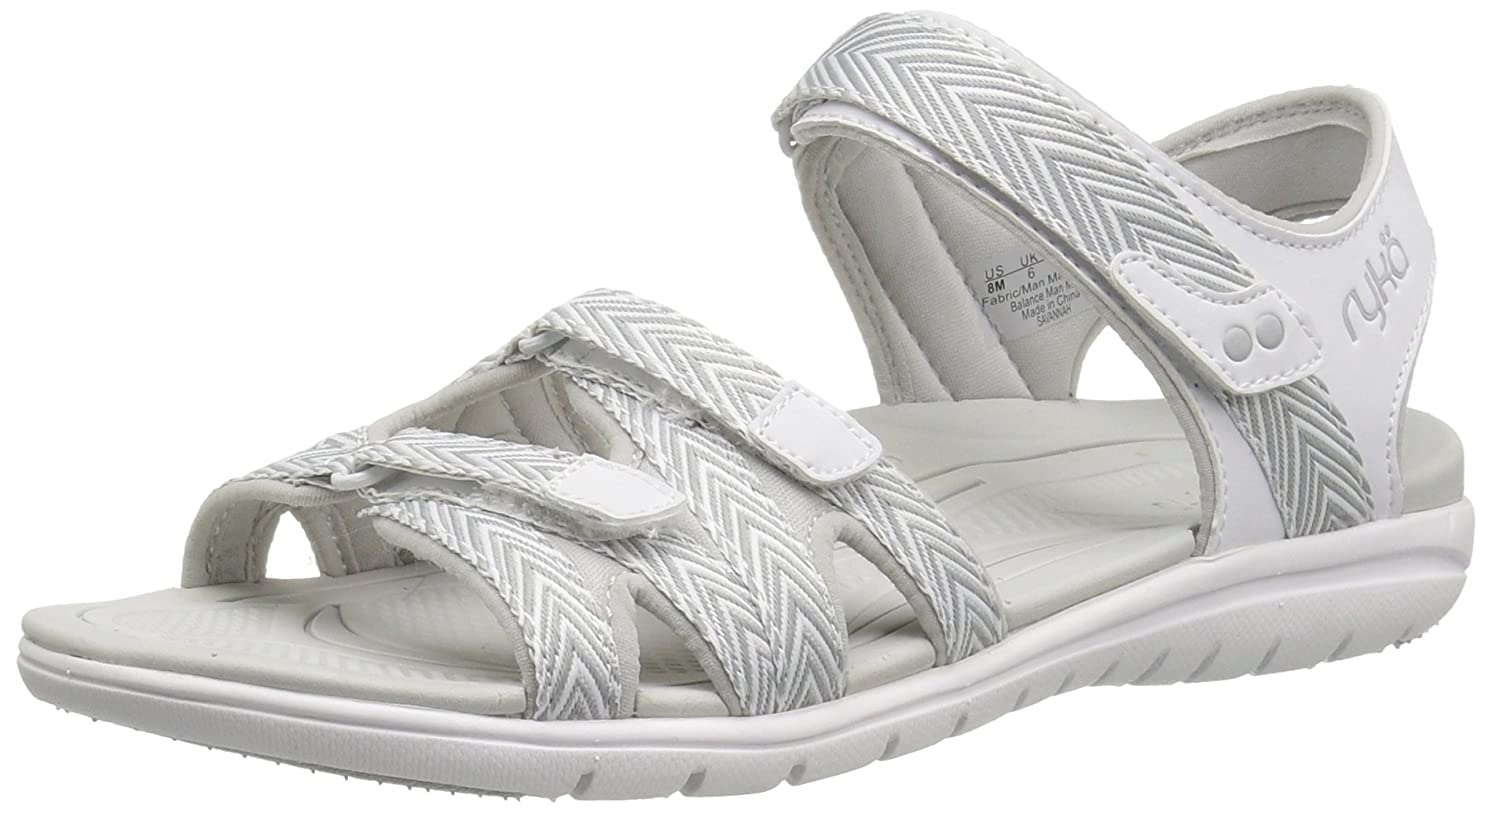 Ryka Women's Savannah Sandal B01KWH5F8W 8 B(M) US|White/Grey